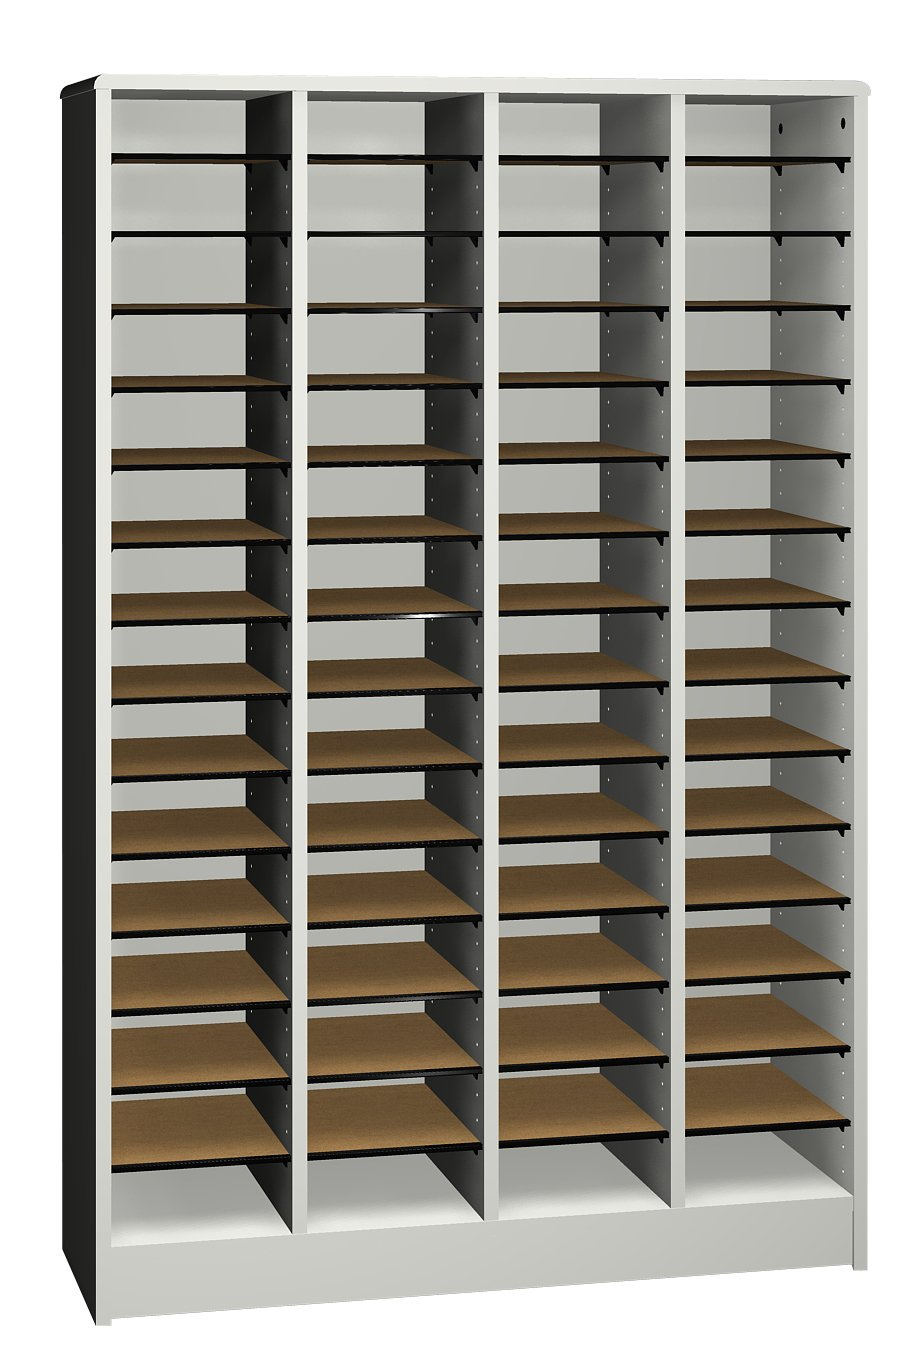 Ironwood Literature Organizer with 60 Compartment, Grey (LO60GG)